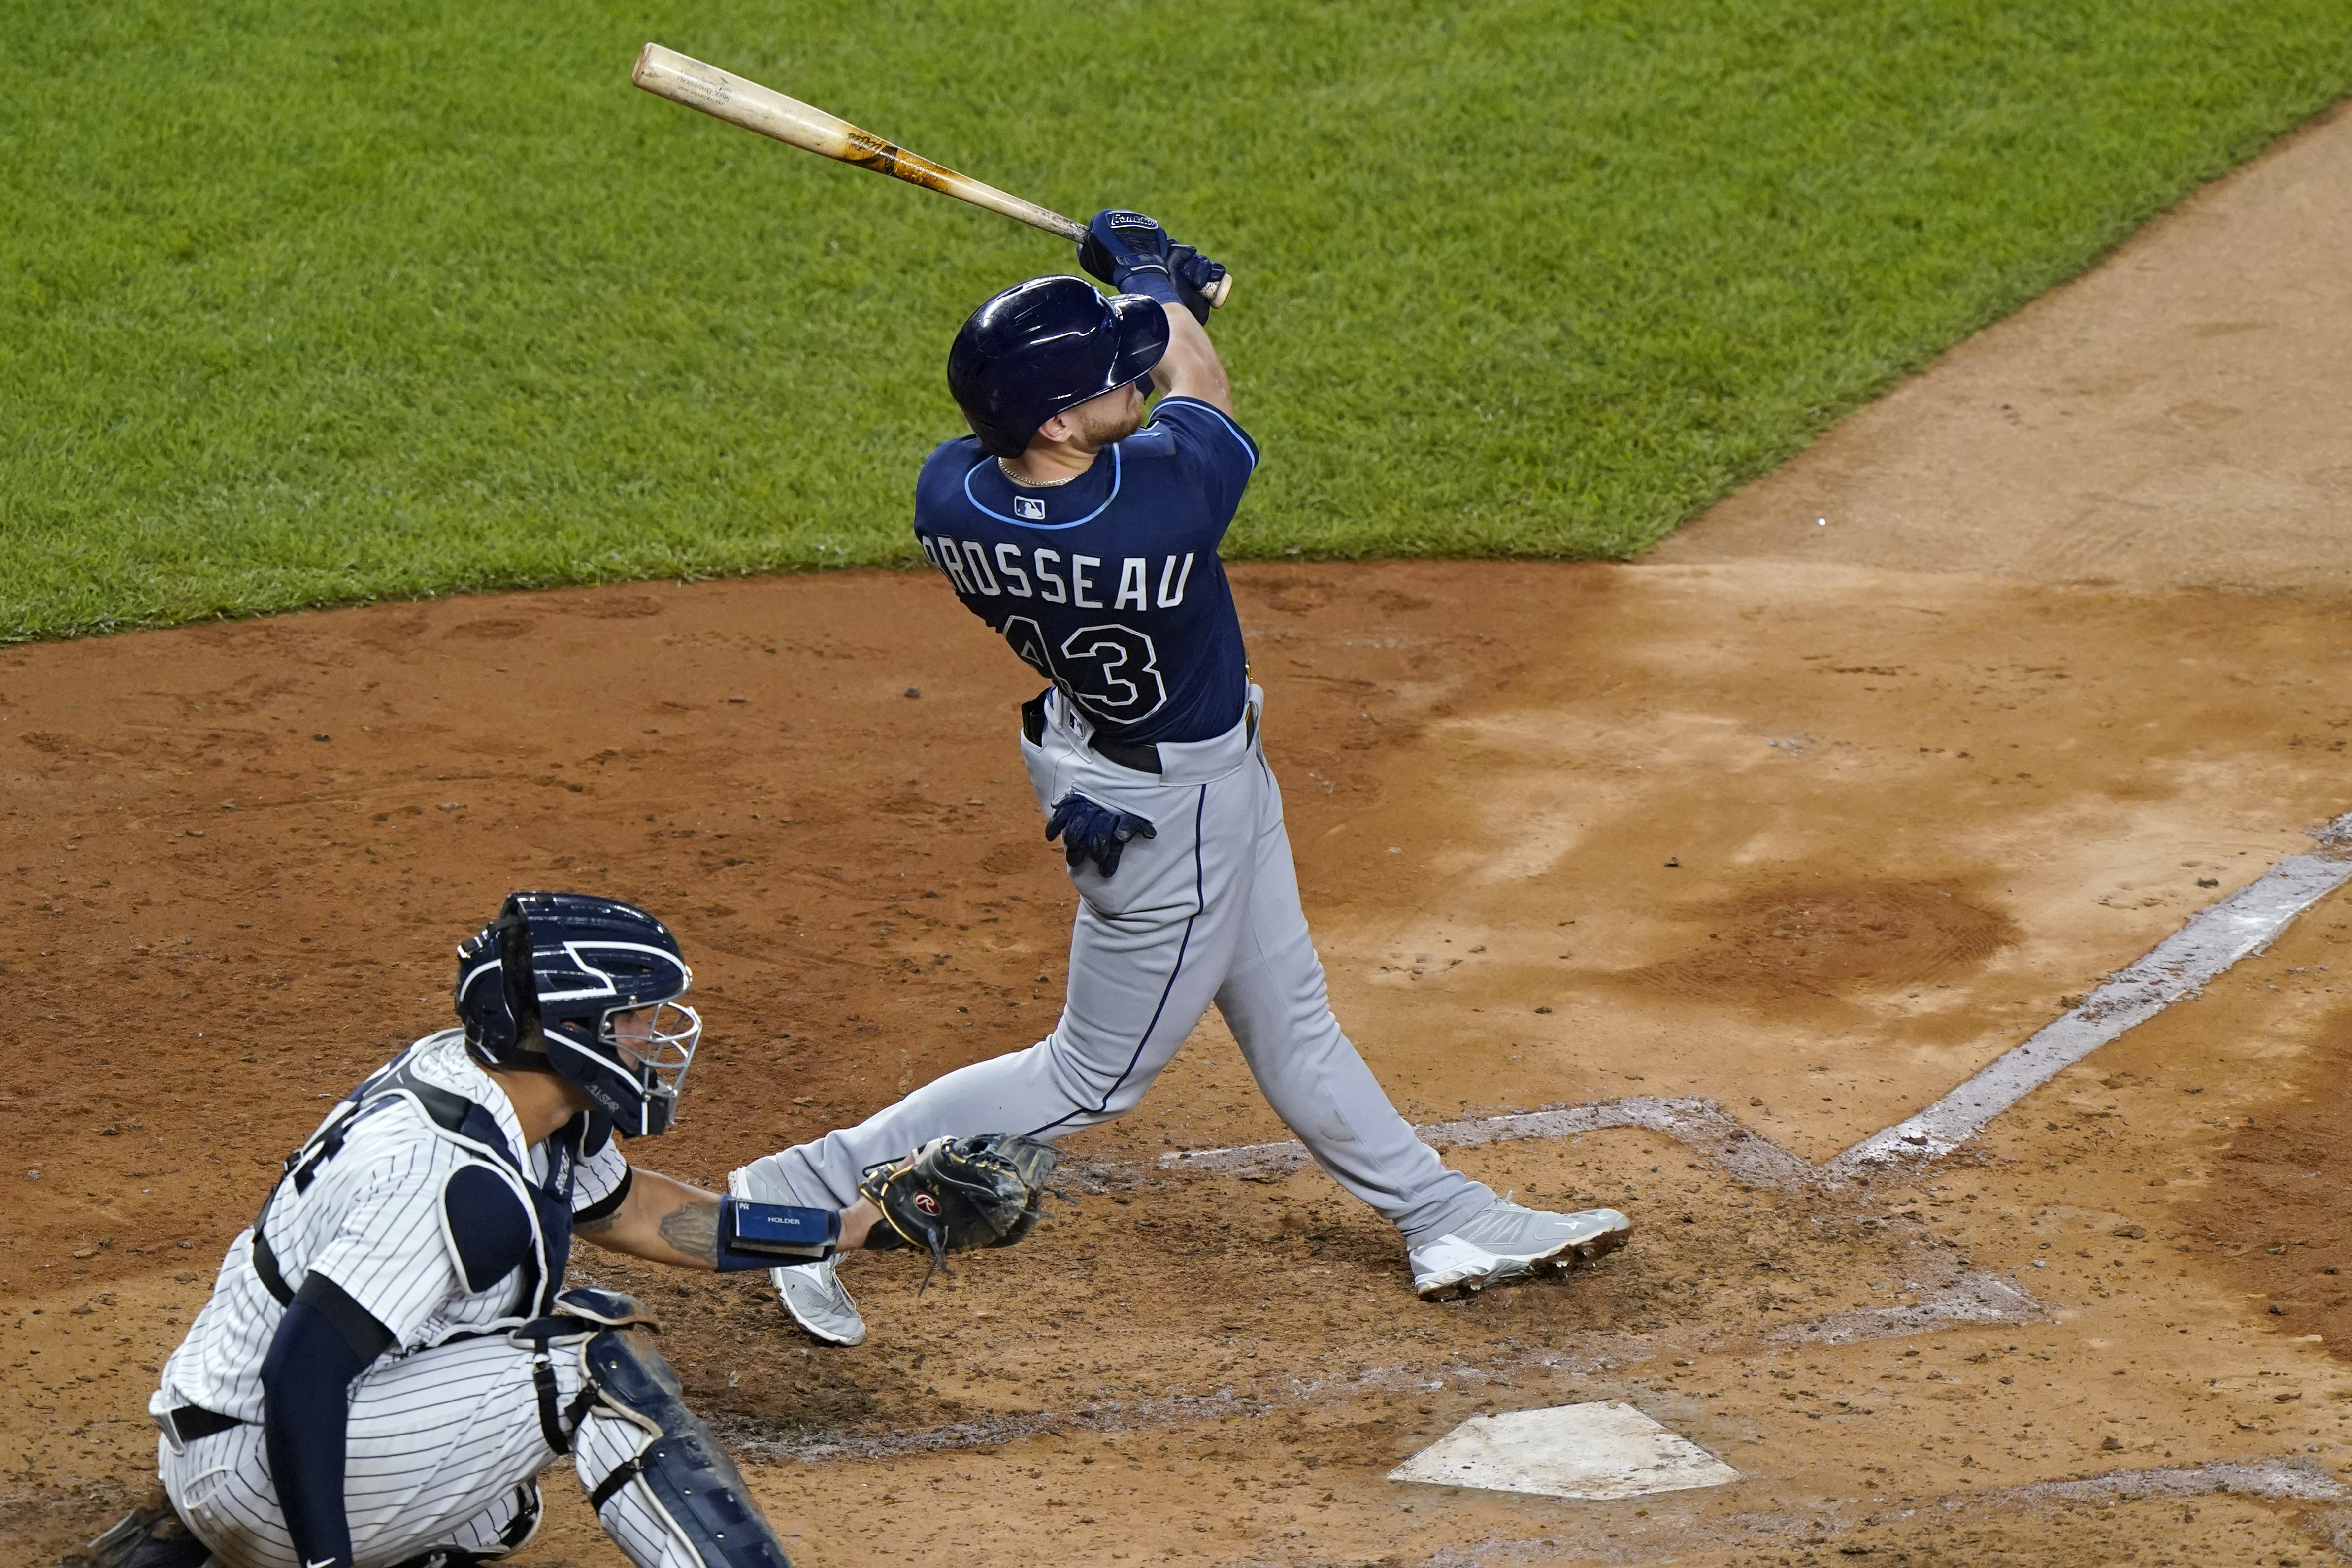 brosseau gets payback as rays beat yankees again 5 2 wdhn dothanfirst com copyright 2020 the associated press all rights reserved